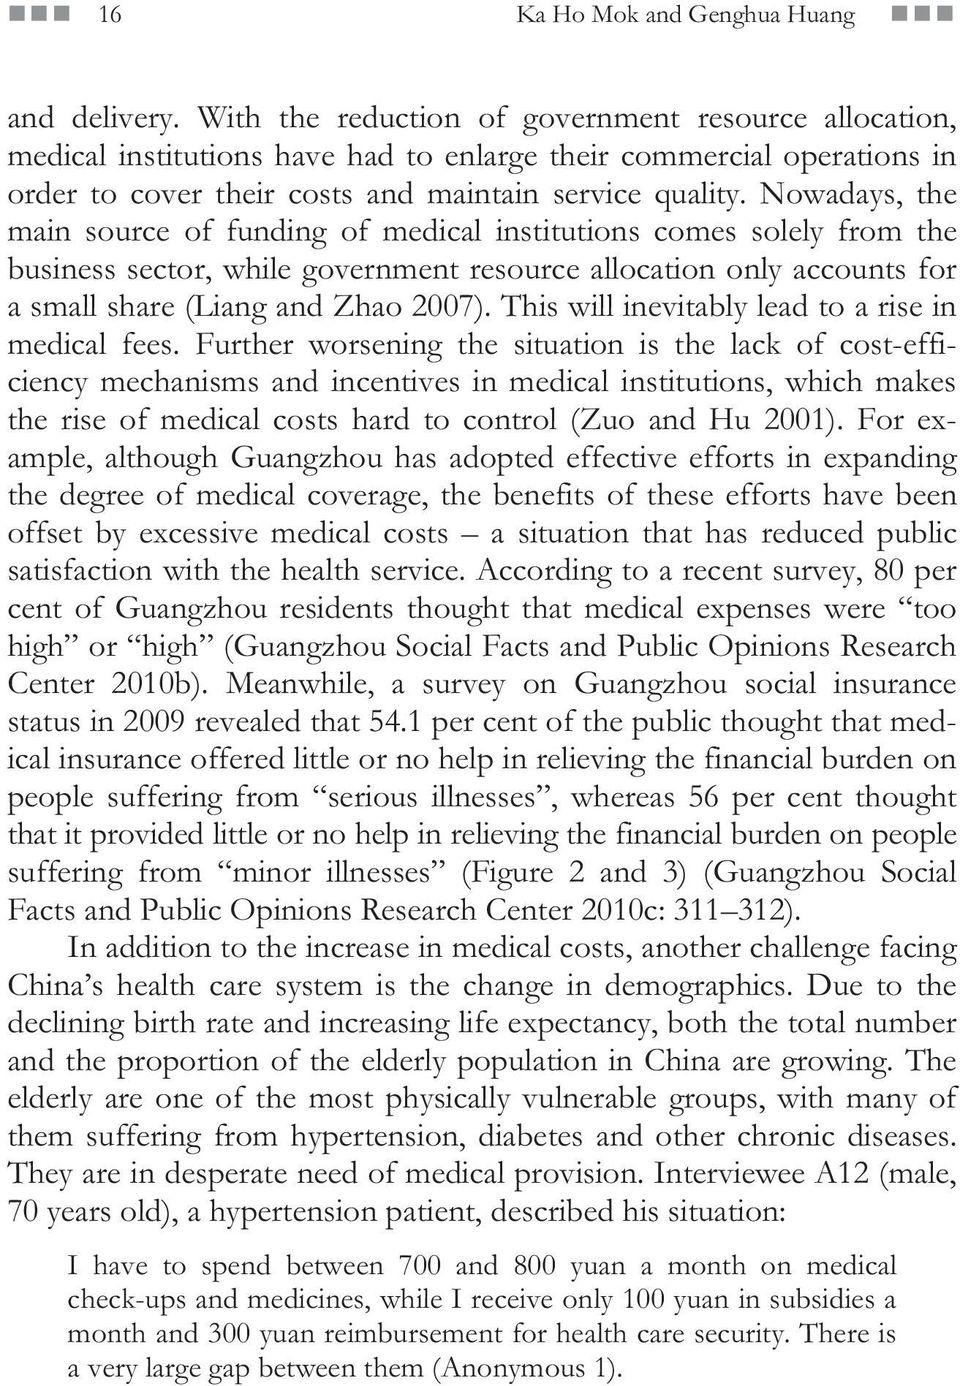 Nowadays, the main source of funding of medical institutions comes solely from the business sector, while government resource allocation only accounts for a small share (Liang and Zhao 2007).